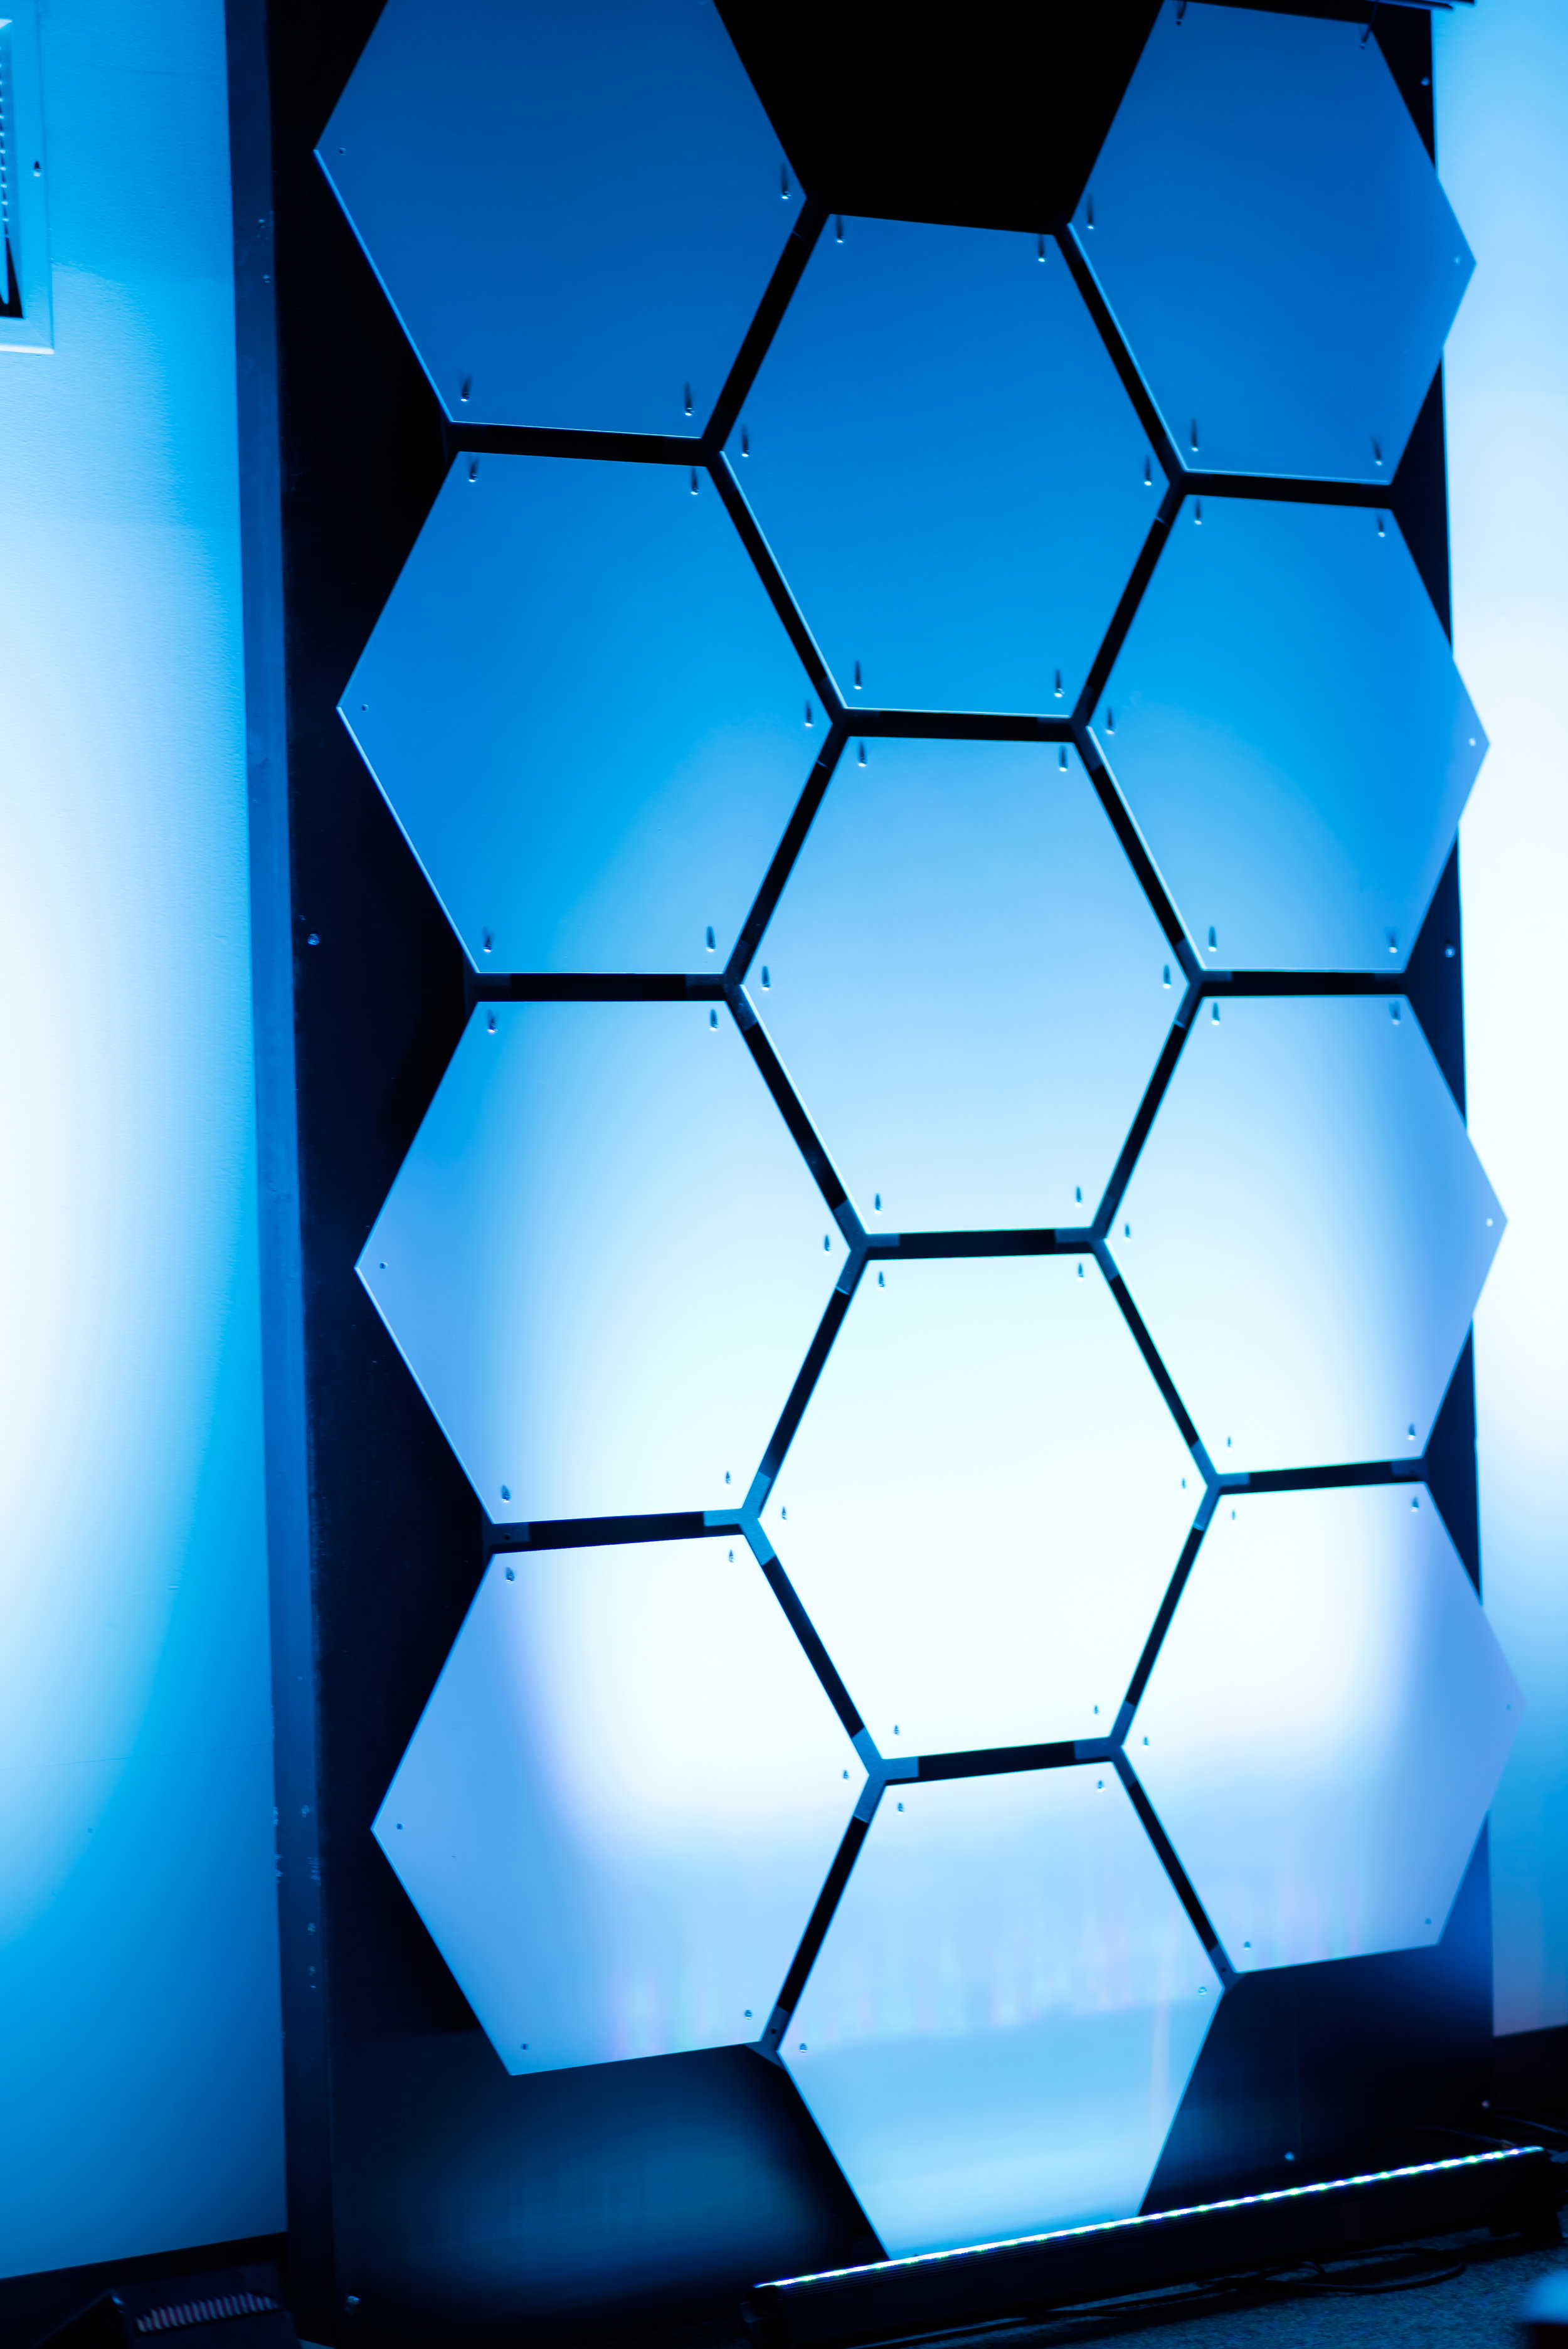 This is a Full Pack of Honeycomb hanging covering a 5' wide x 8' high wall section.